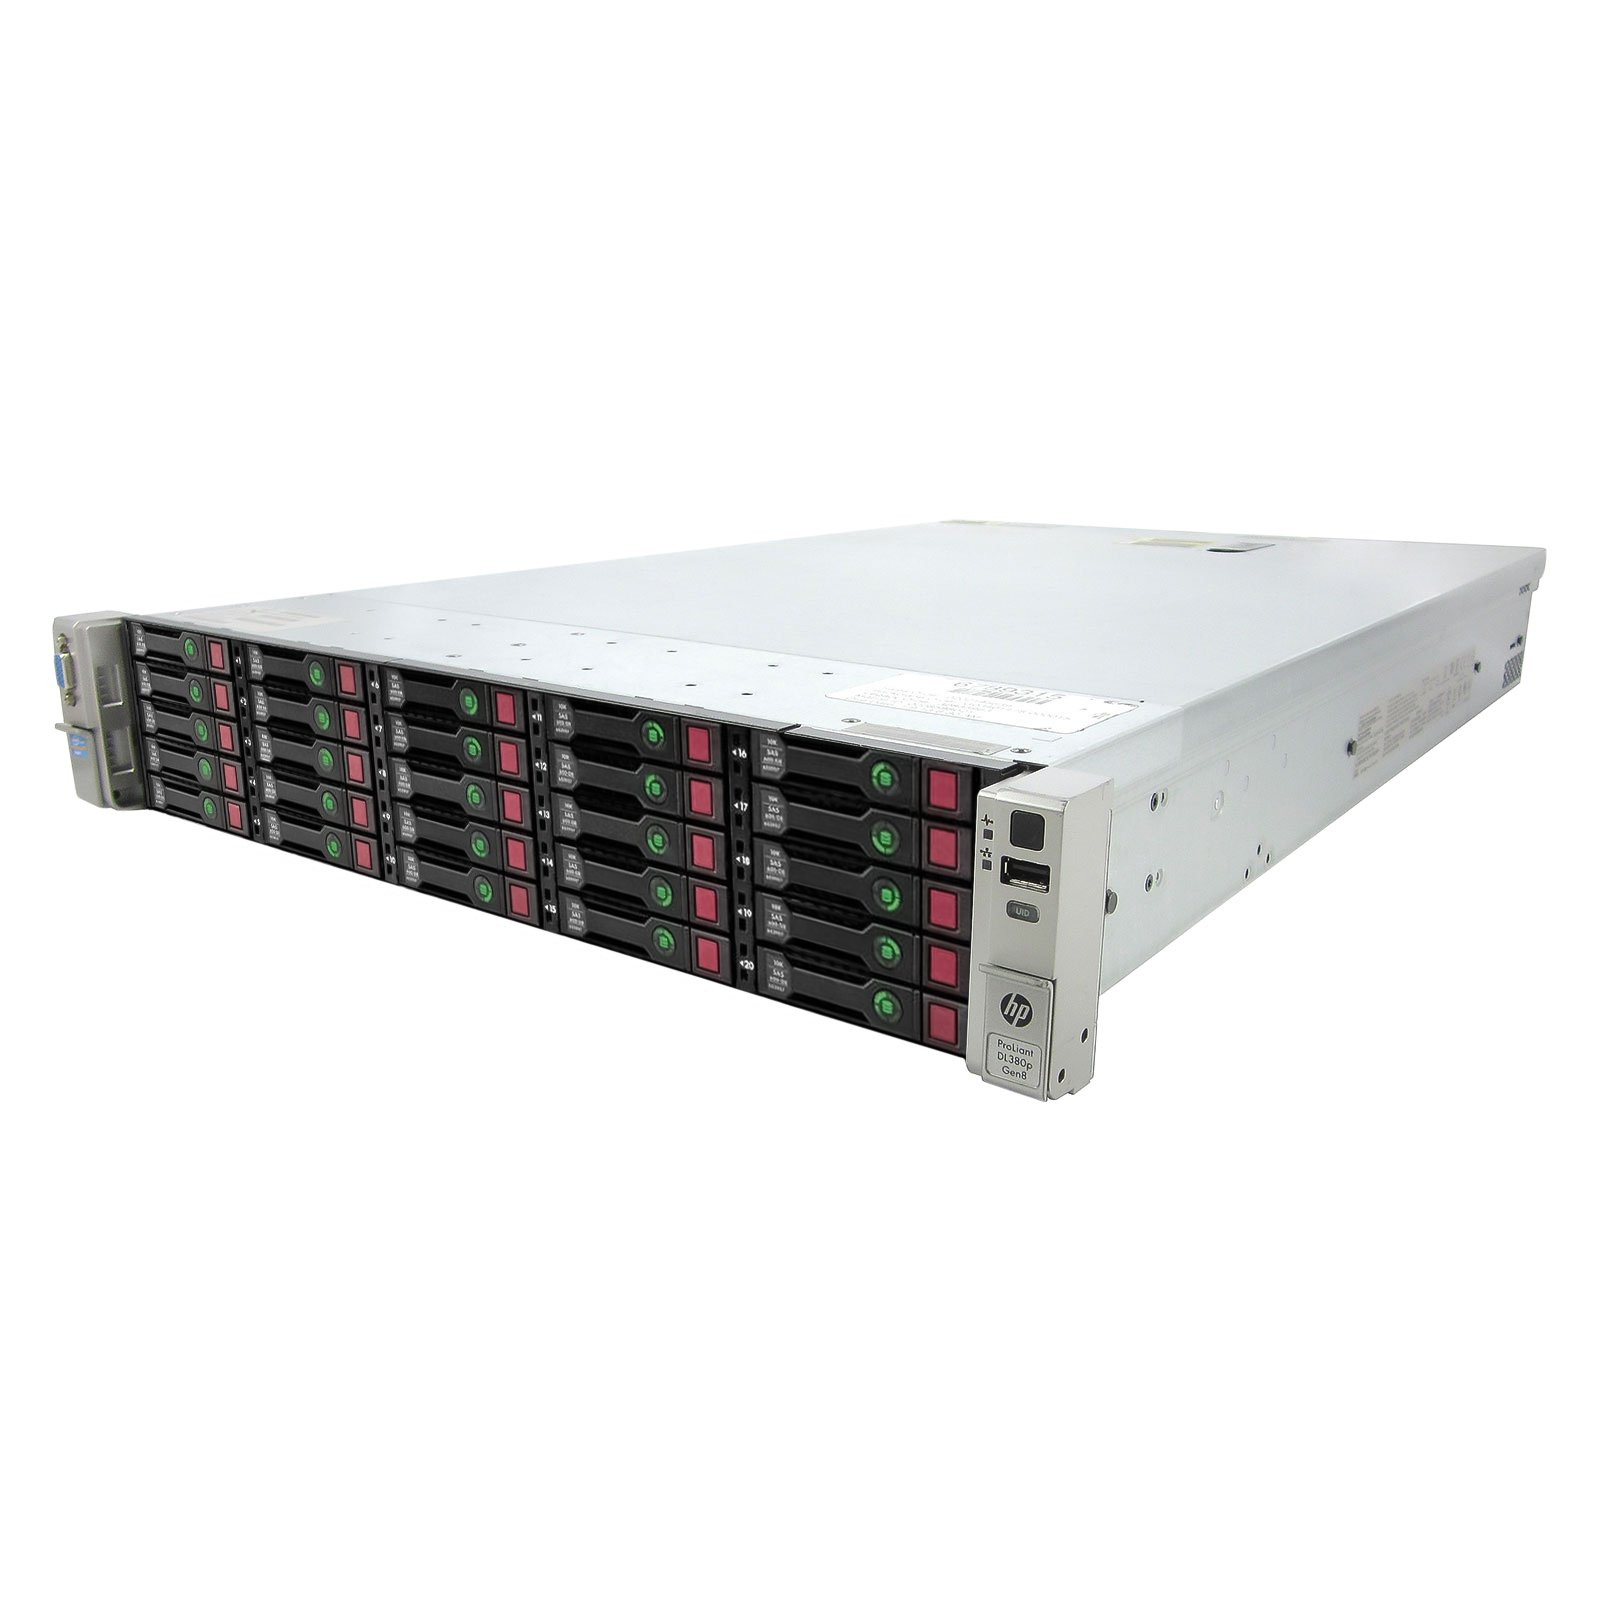 High-End HP ProLiant DL380P G8 Server 2x 2.90Ghz E5-2690 8C 384GB 25x 146GB 15K (Certified Refurbished)